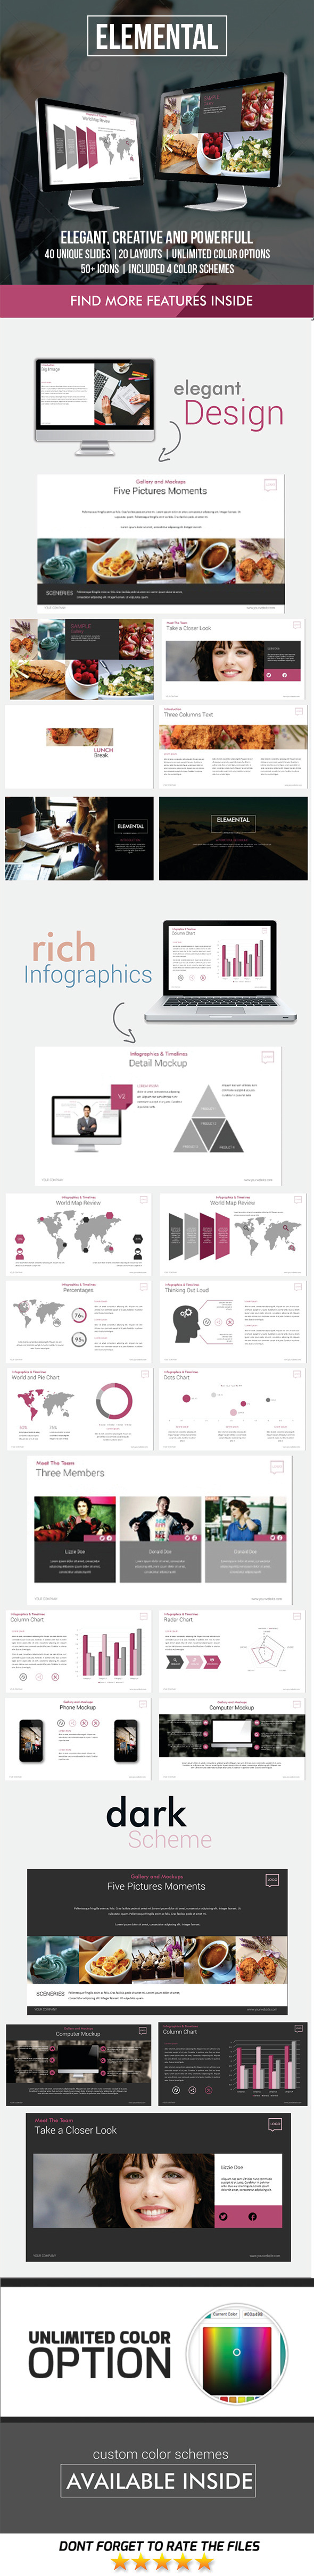 GraphicRiver Elemental PowerPoint Template 11878233